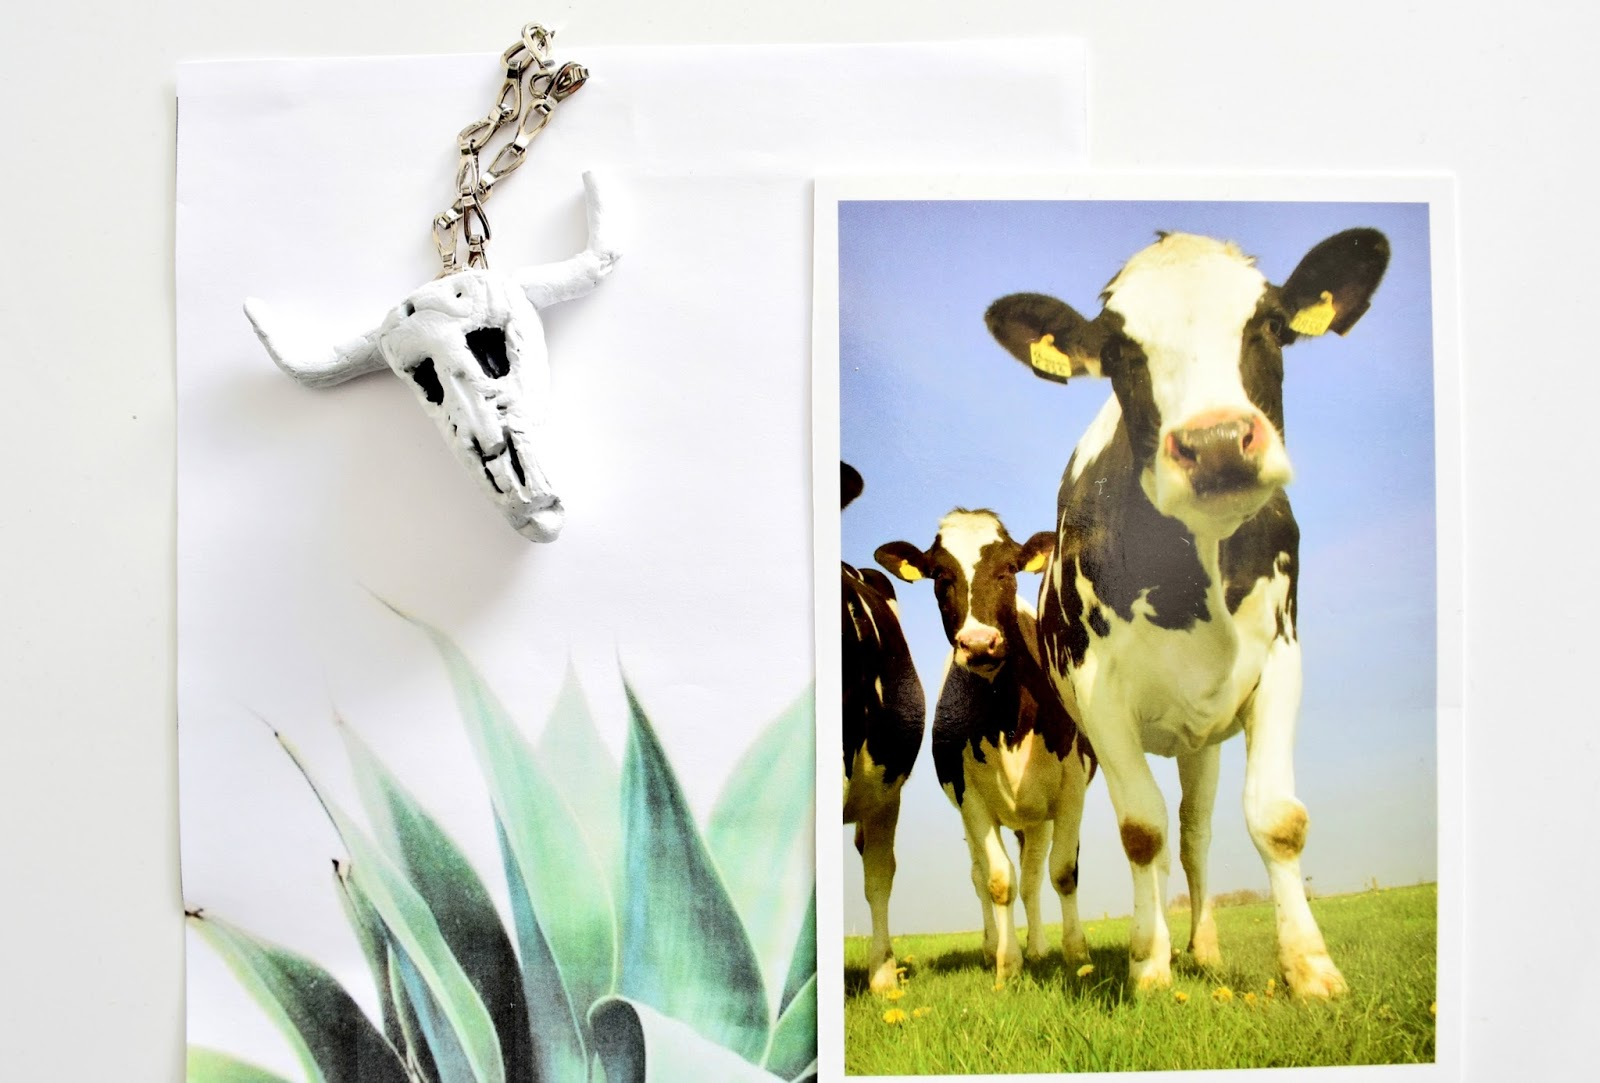 Symbols of the Netherlands - Cows